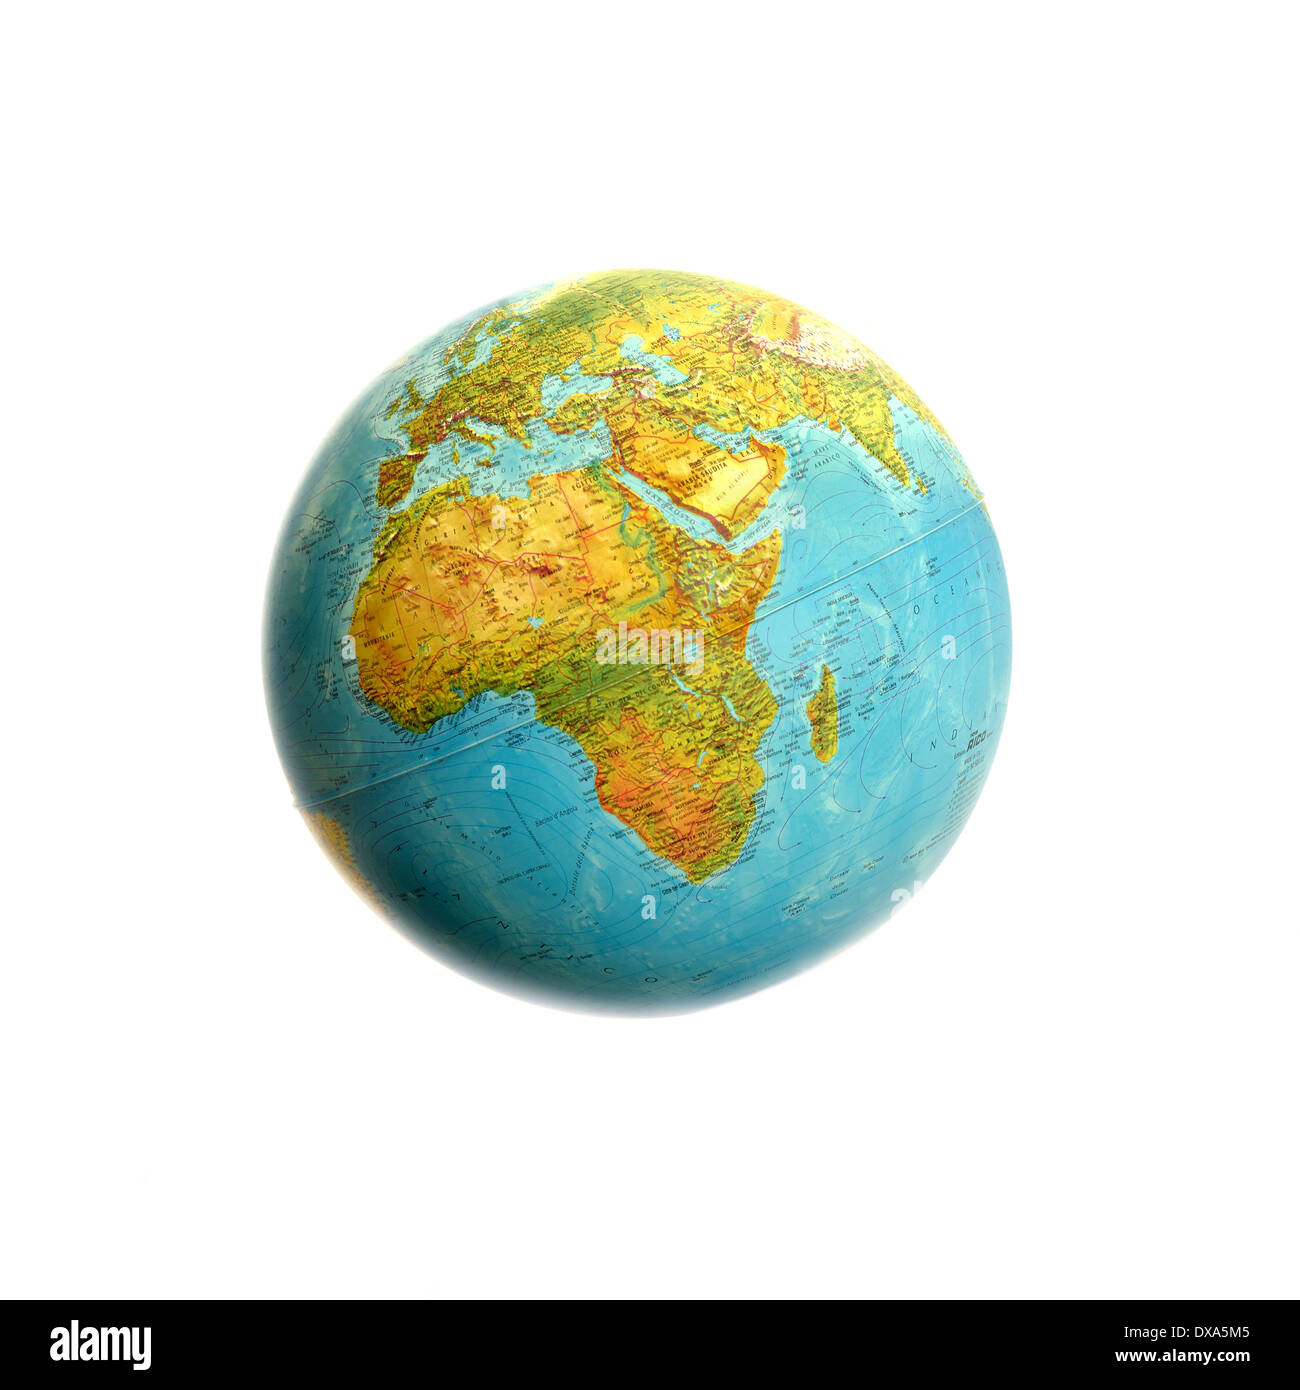 view of world map globe with background white - Stock Image